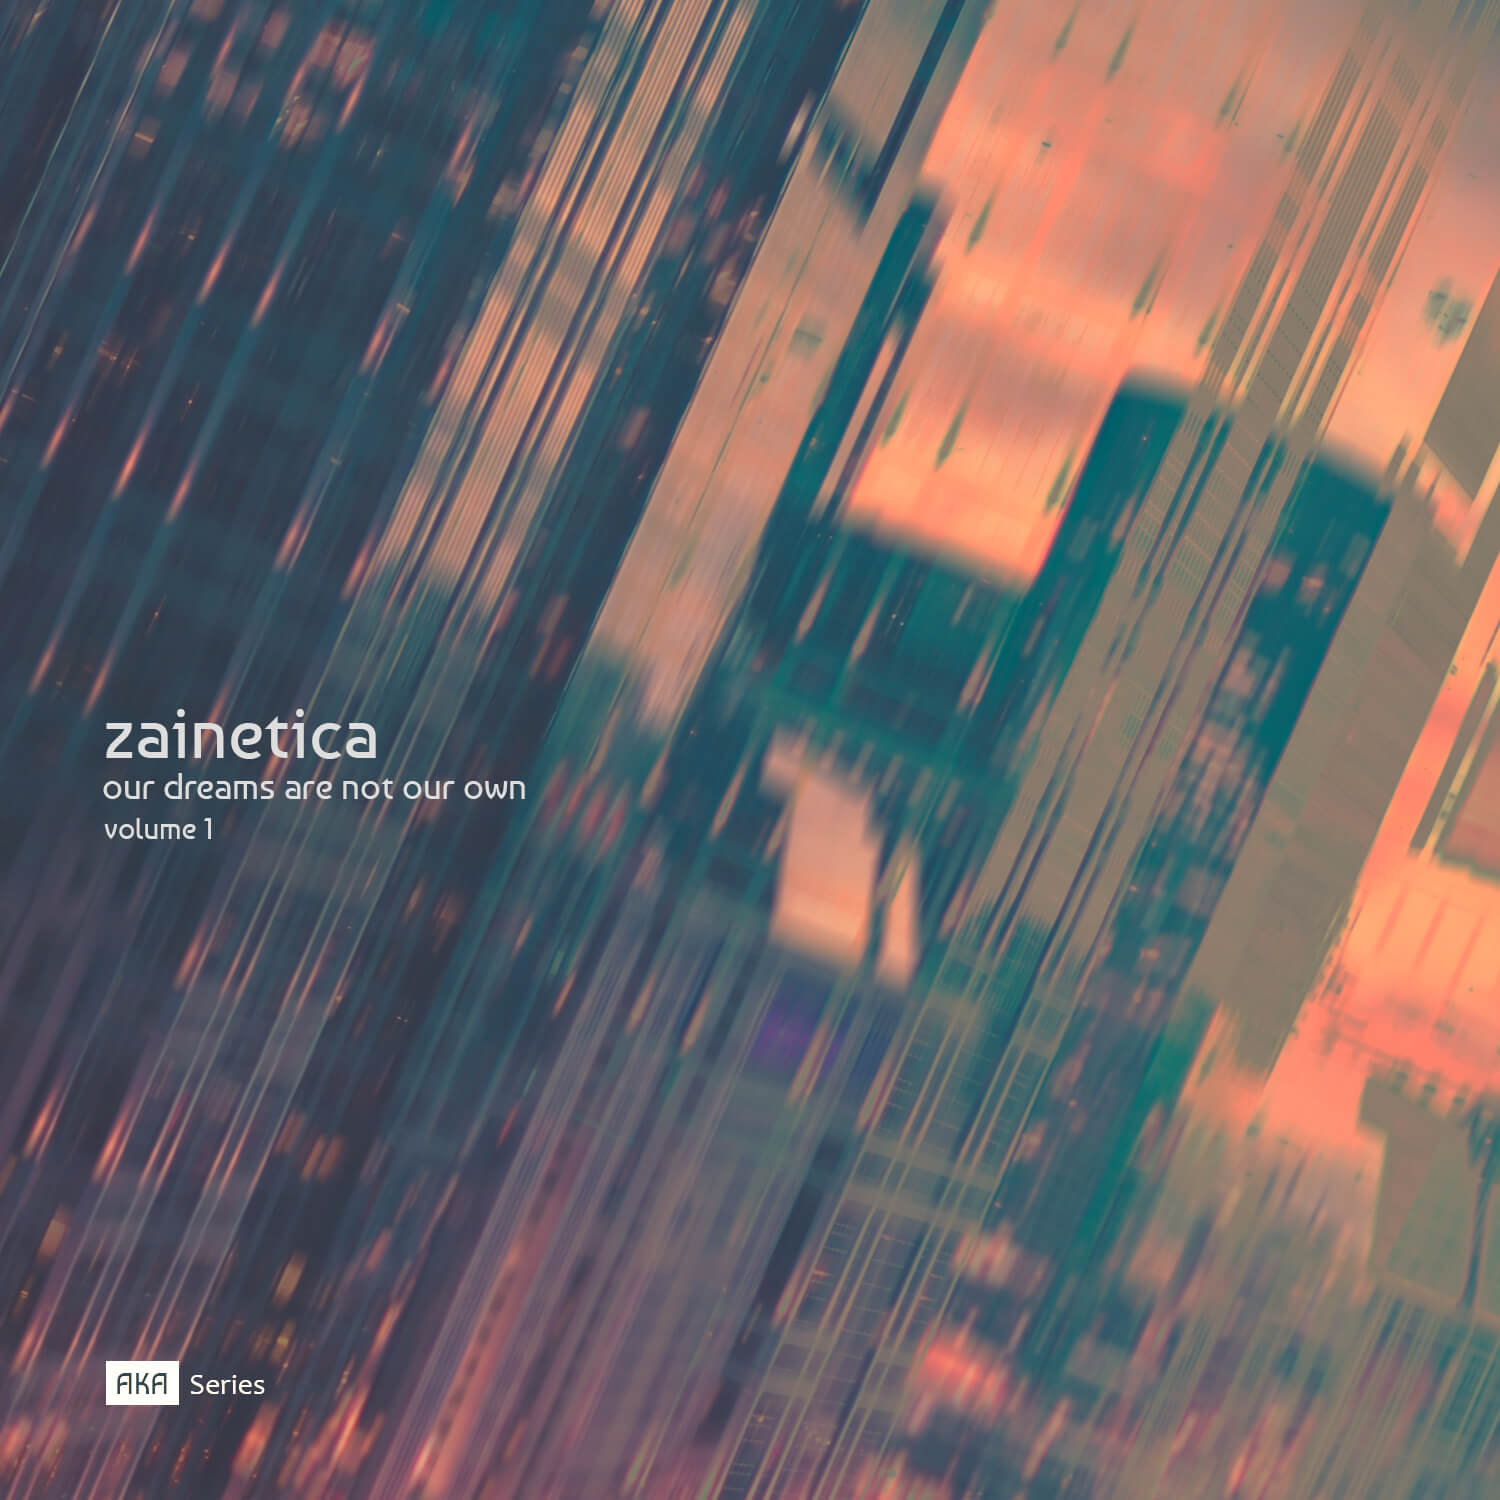 Our Dreams Are Not Our Own - Zainetica